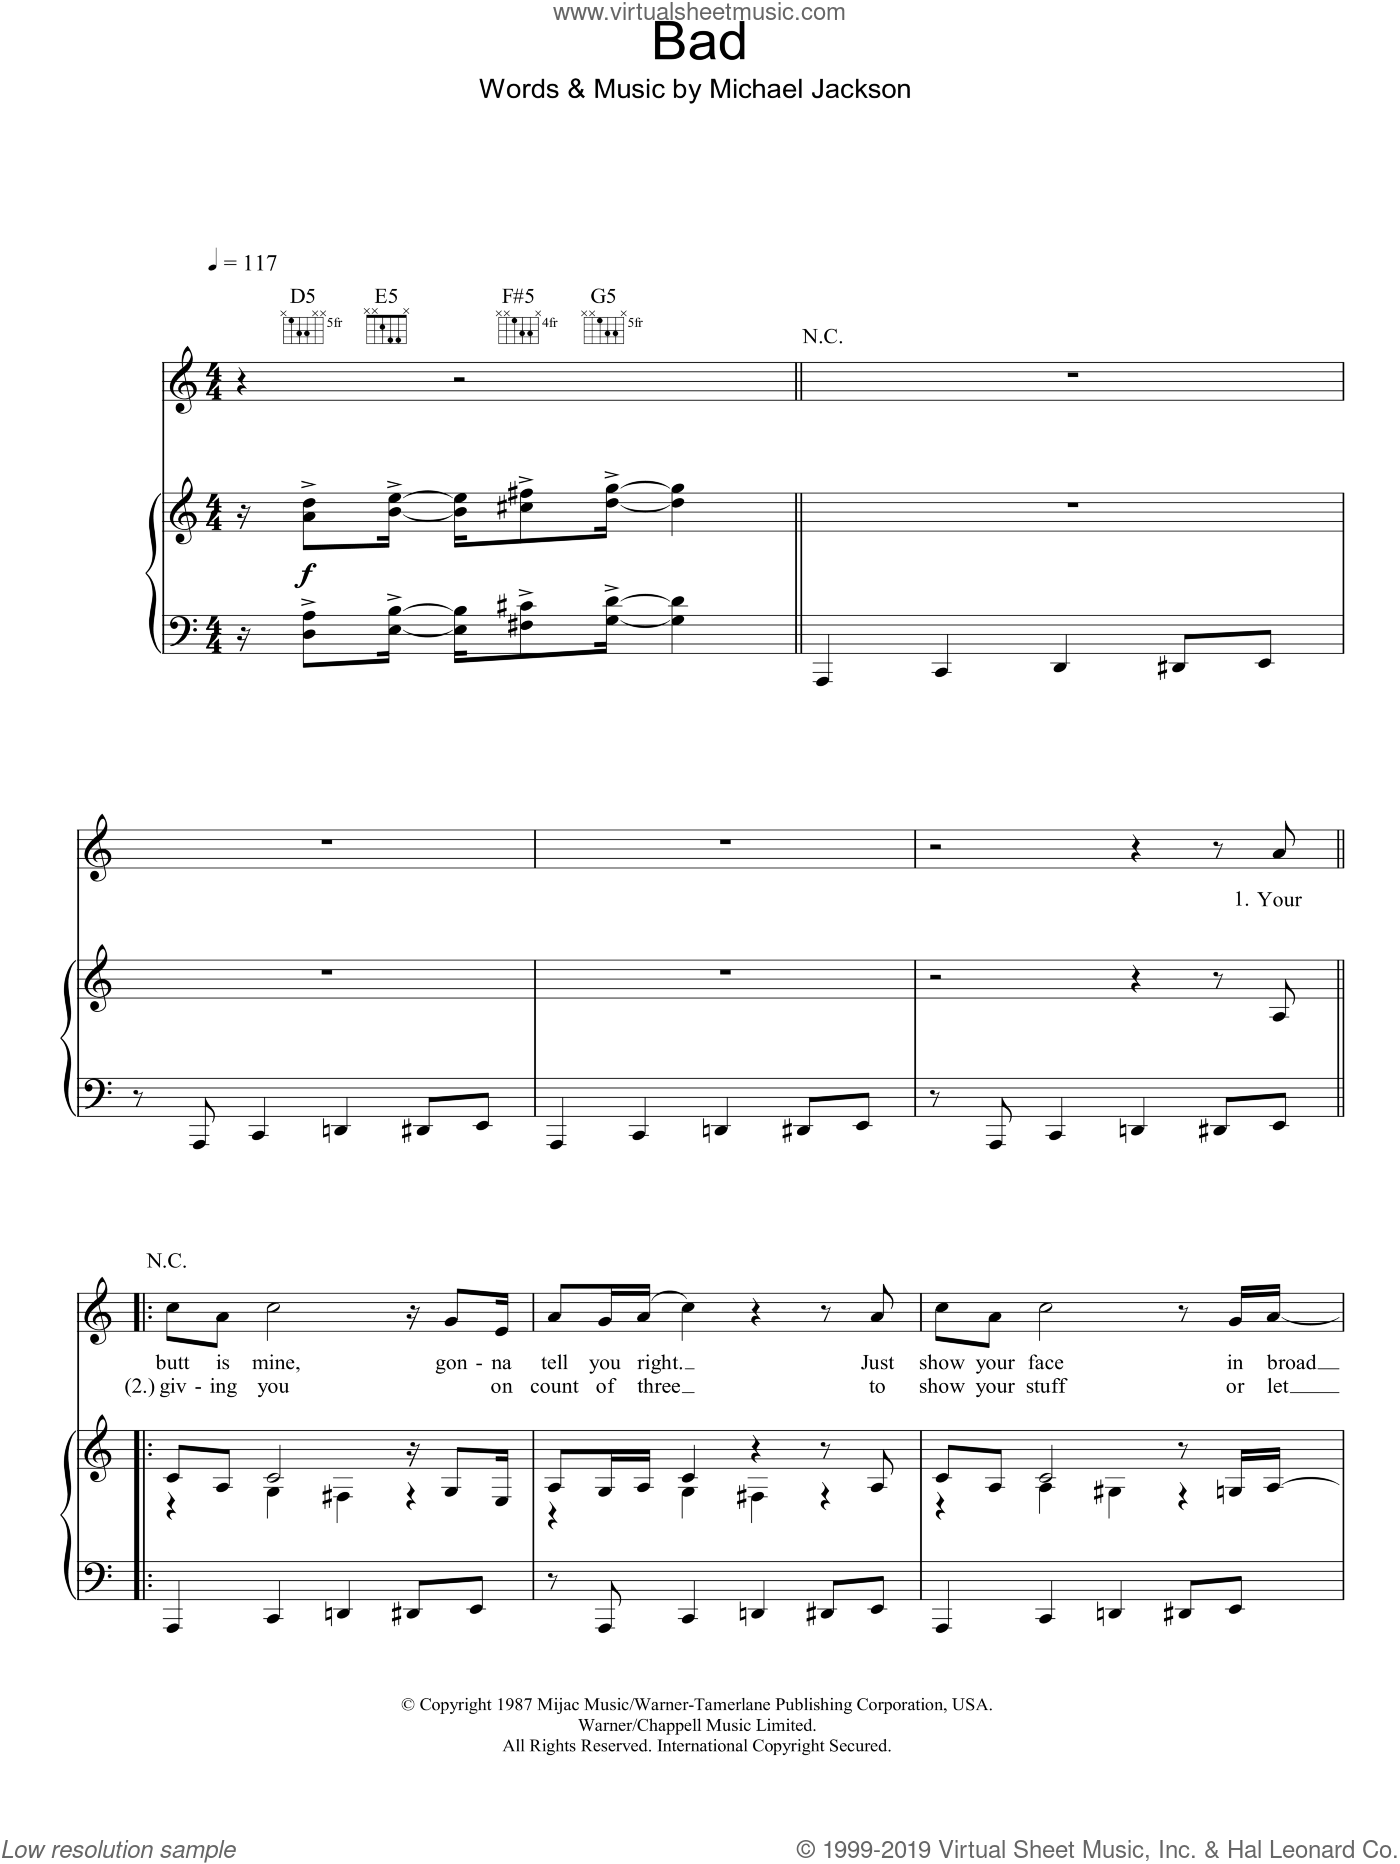 Bad sheet music for voice, piano or guitar by Michael Jackson